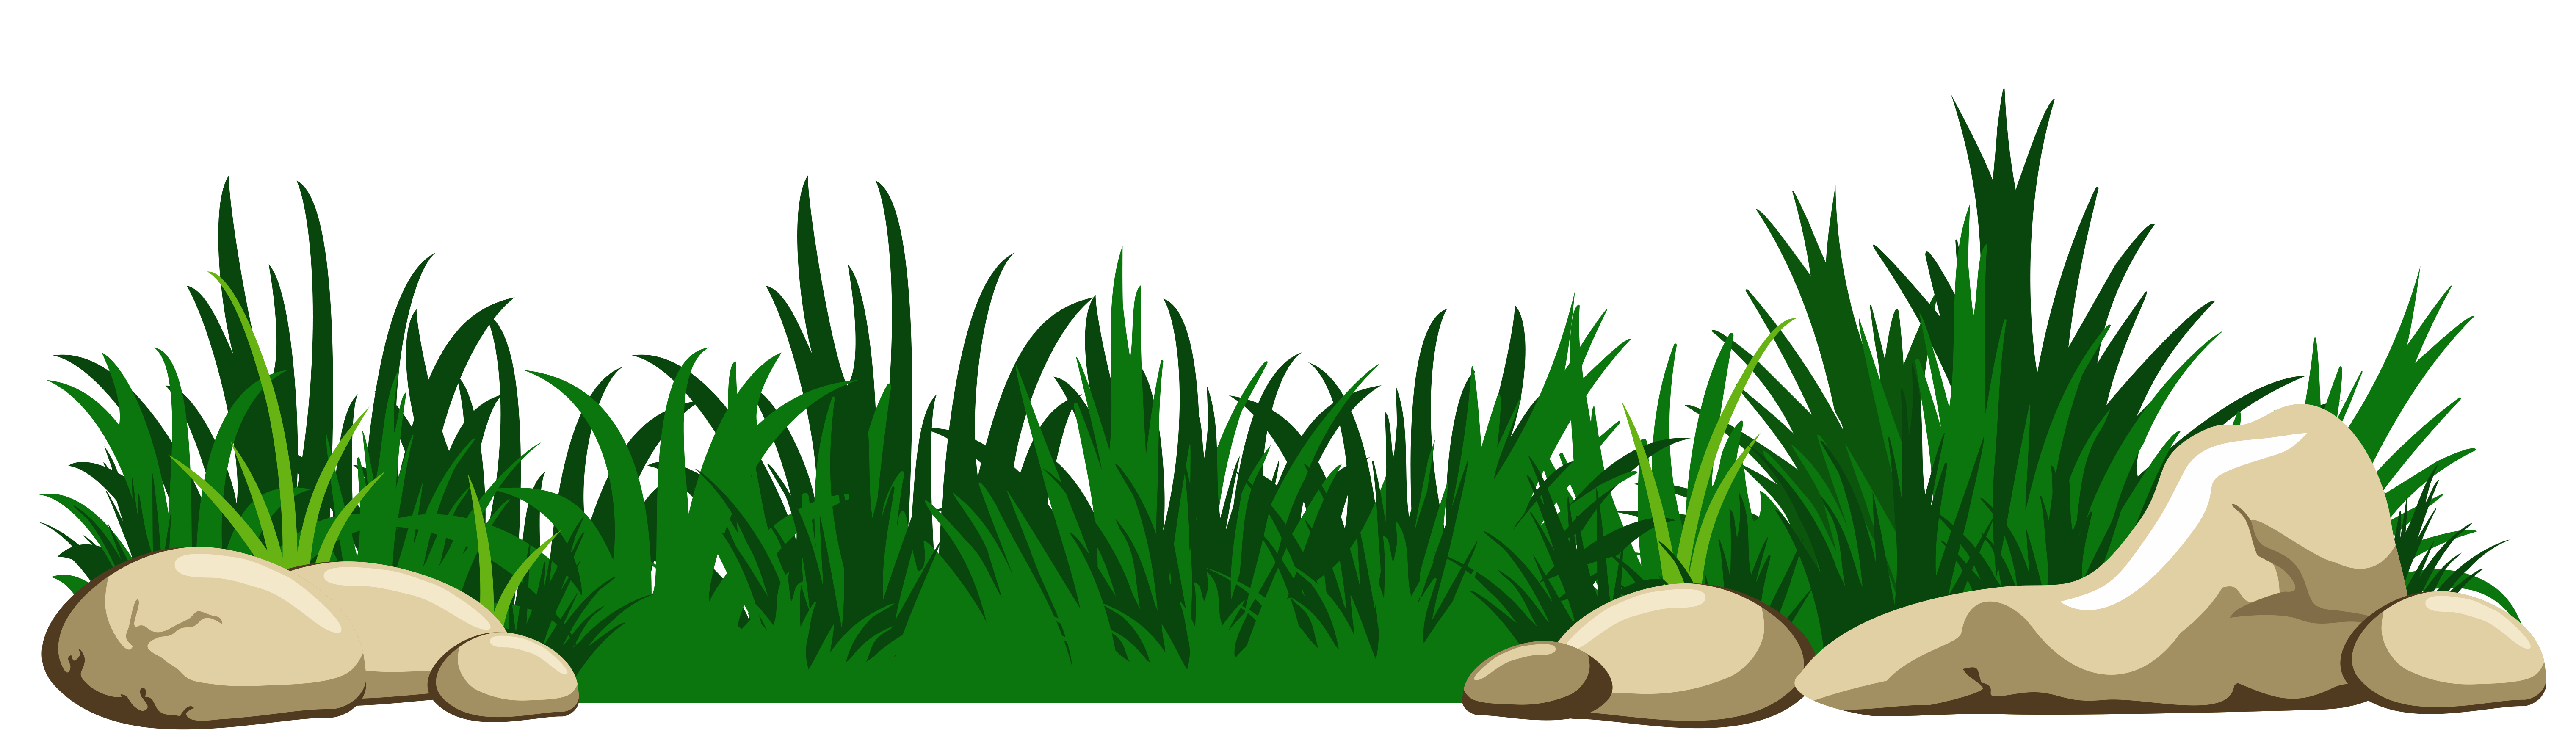 jpg library stock Blade grass free on. Lawn clipart